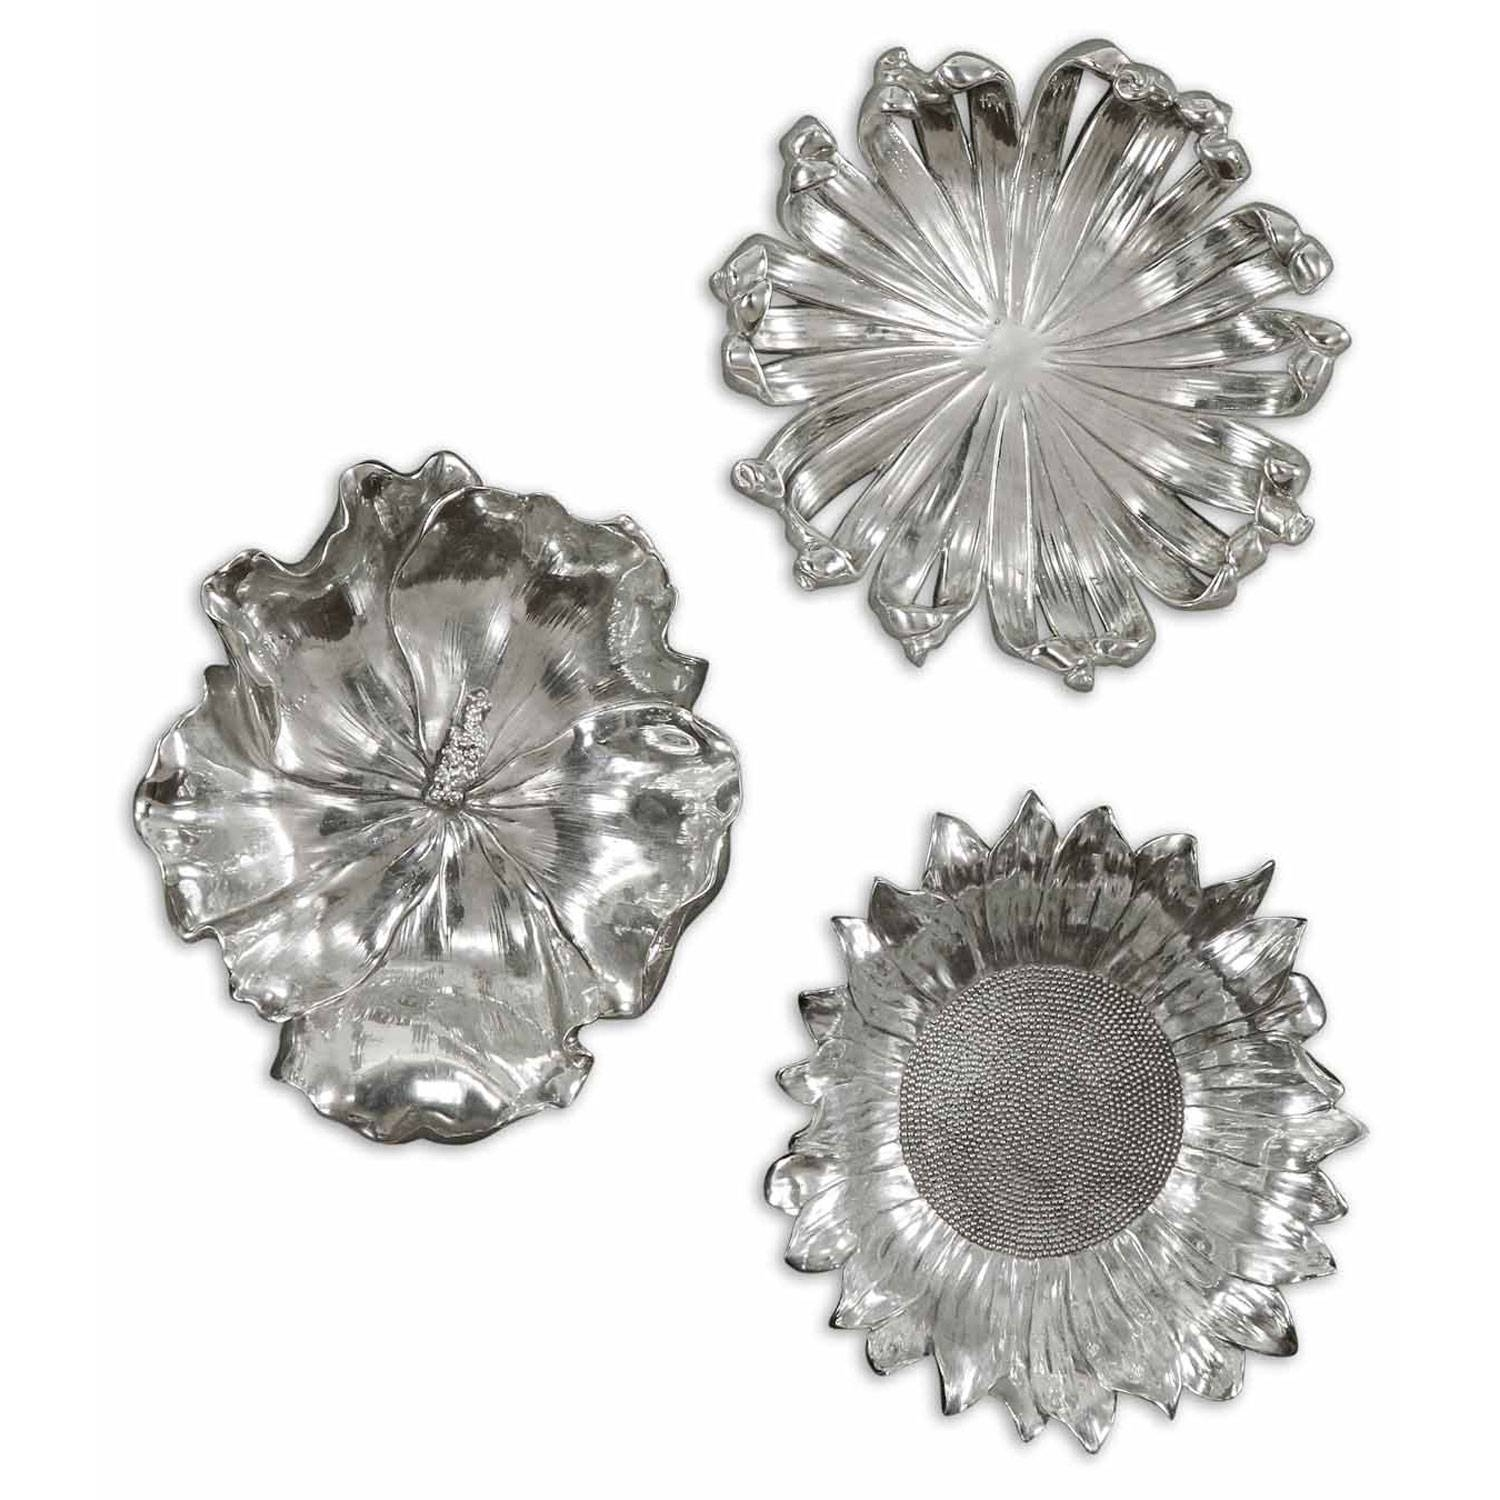 Silver Flowers Metal Wall Art, Set Of Three Uttermost Wall With Regard To Most Recently Released Metal Wall Art Flowers (View 13 of 20)